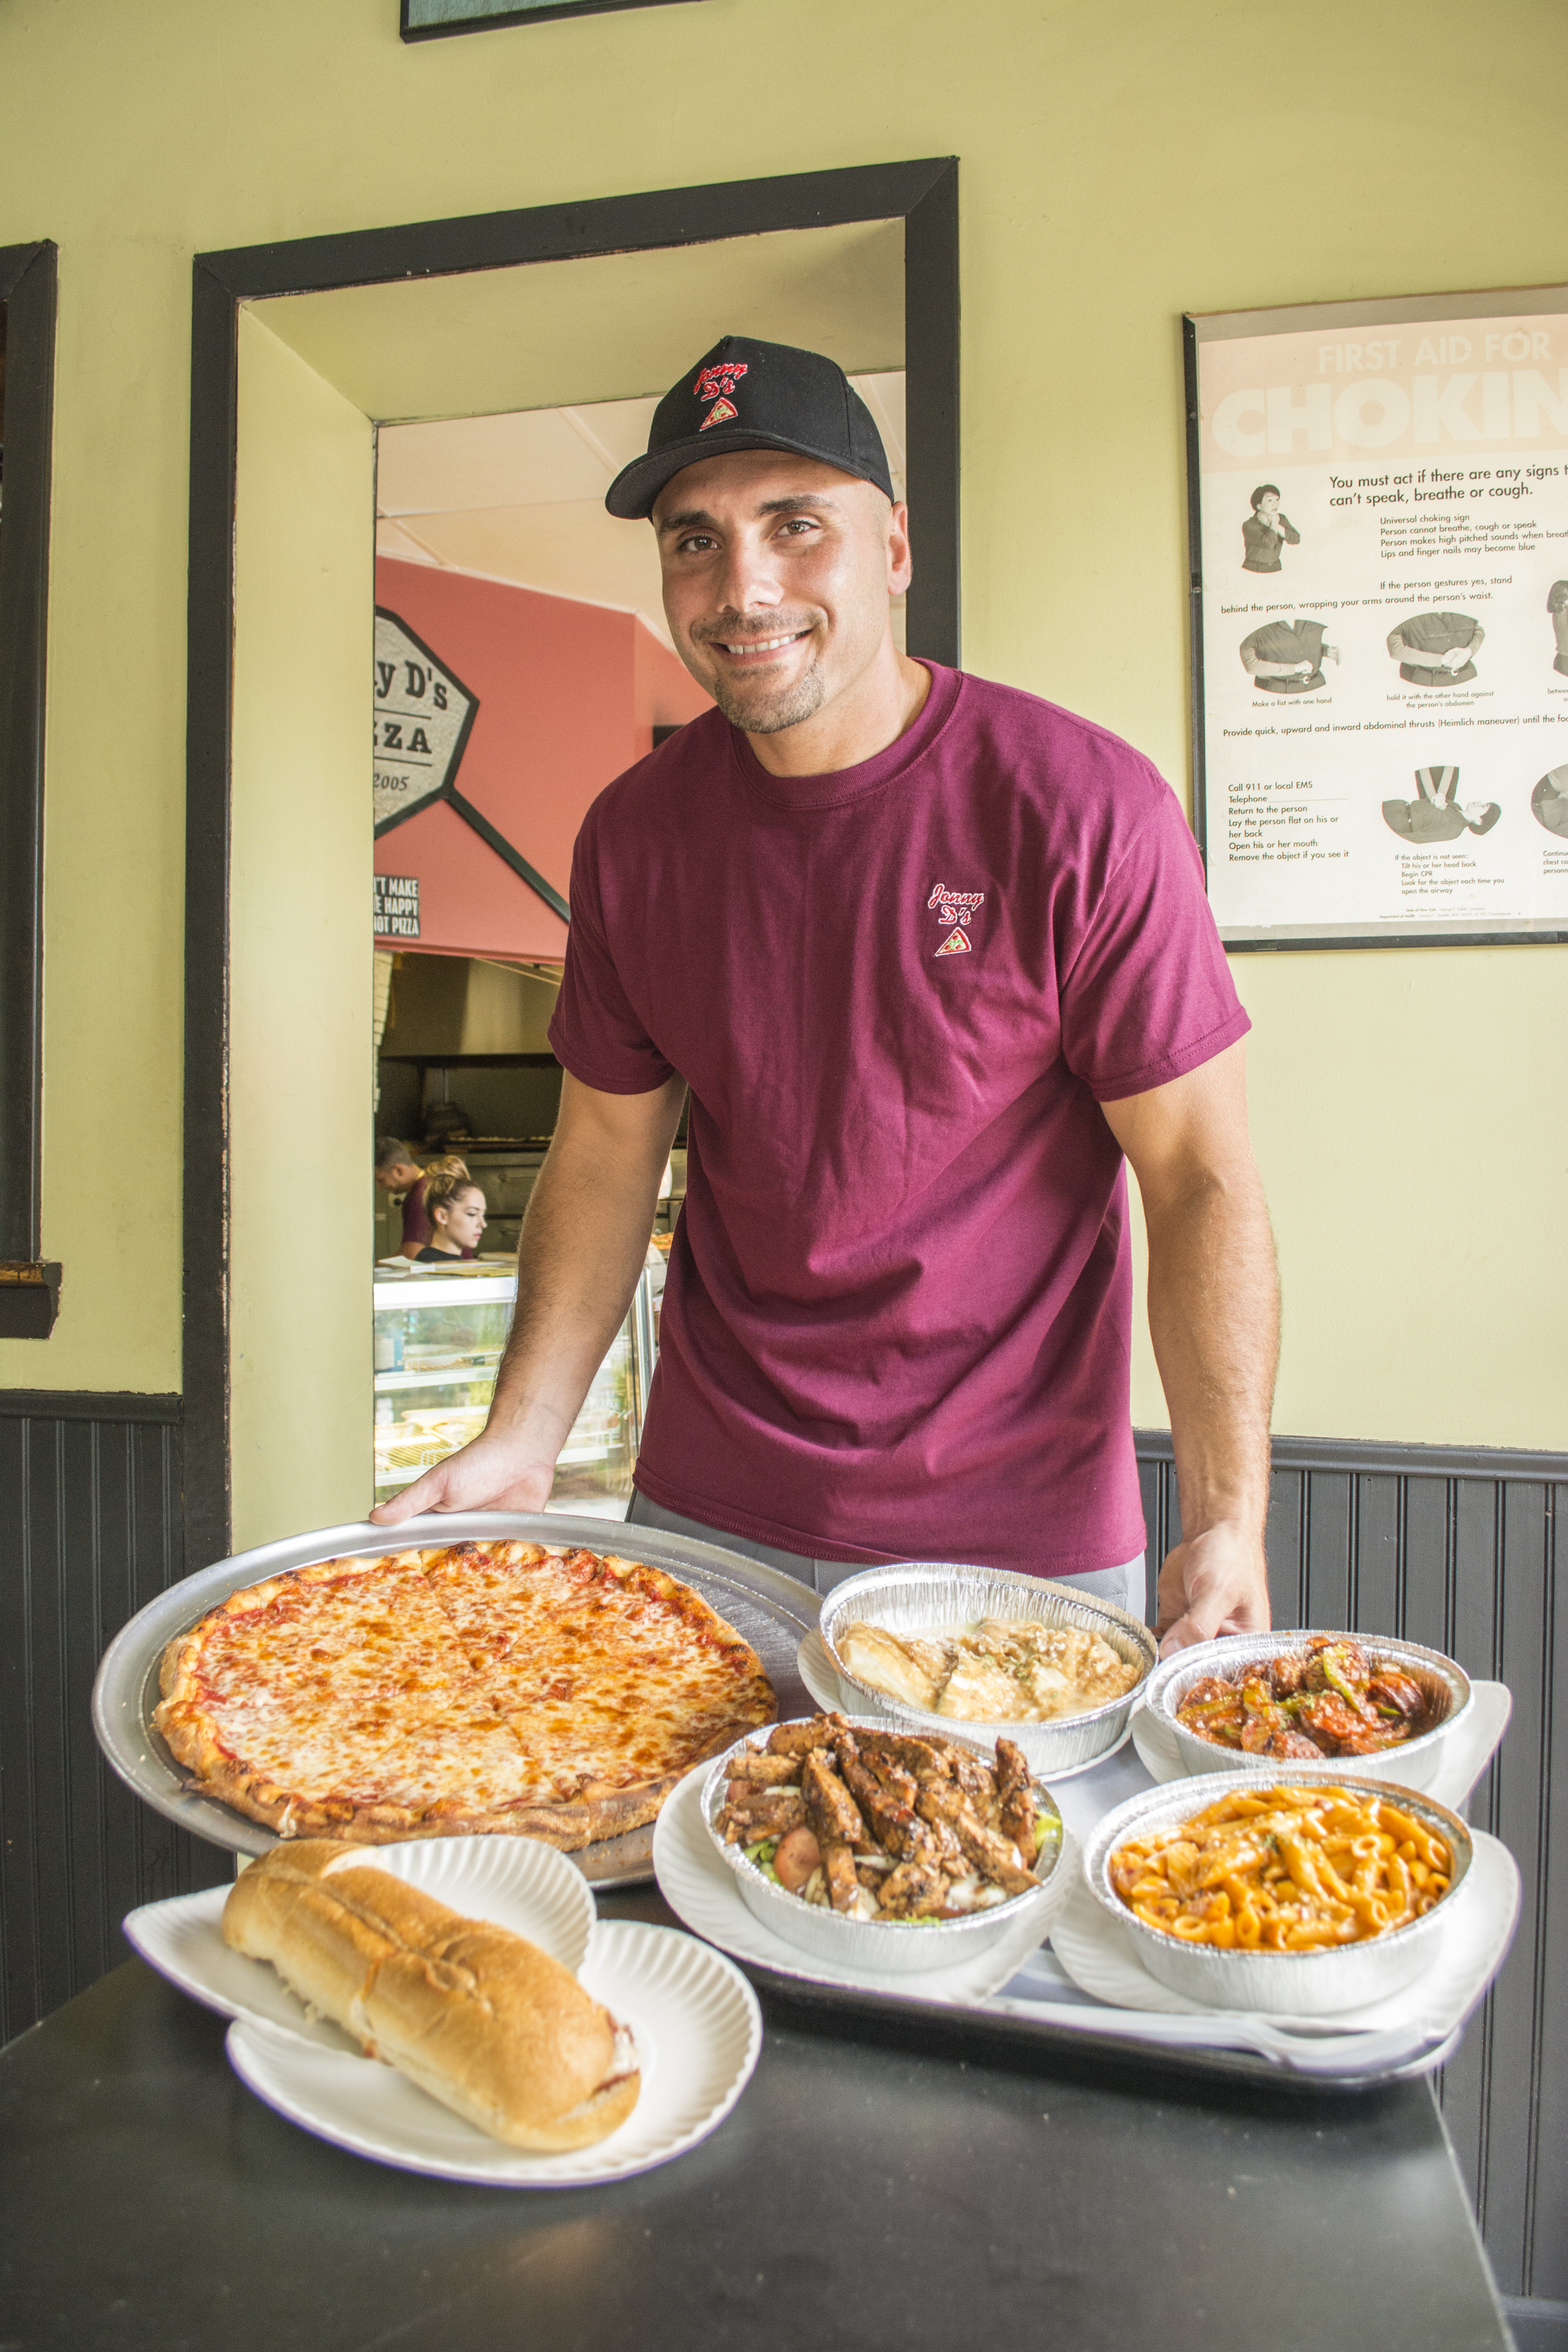 Jonny Dawson, owner of Jonny D's Pizza, shows off some of the pizzeria's offerings. From left: a regular cheese pie; chicken parmesan hero; salad with grilled chicken; chicken francese; penne ala vodka; and sausage and peppers.